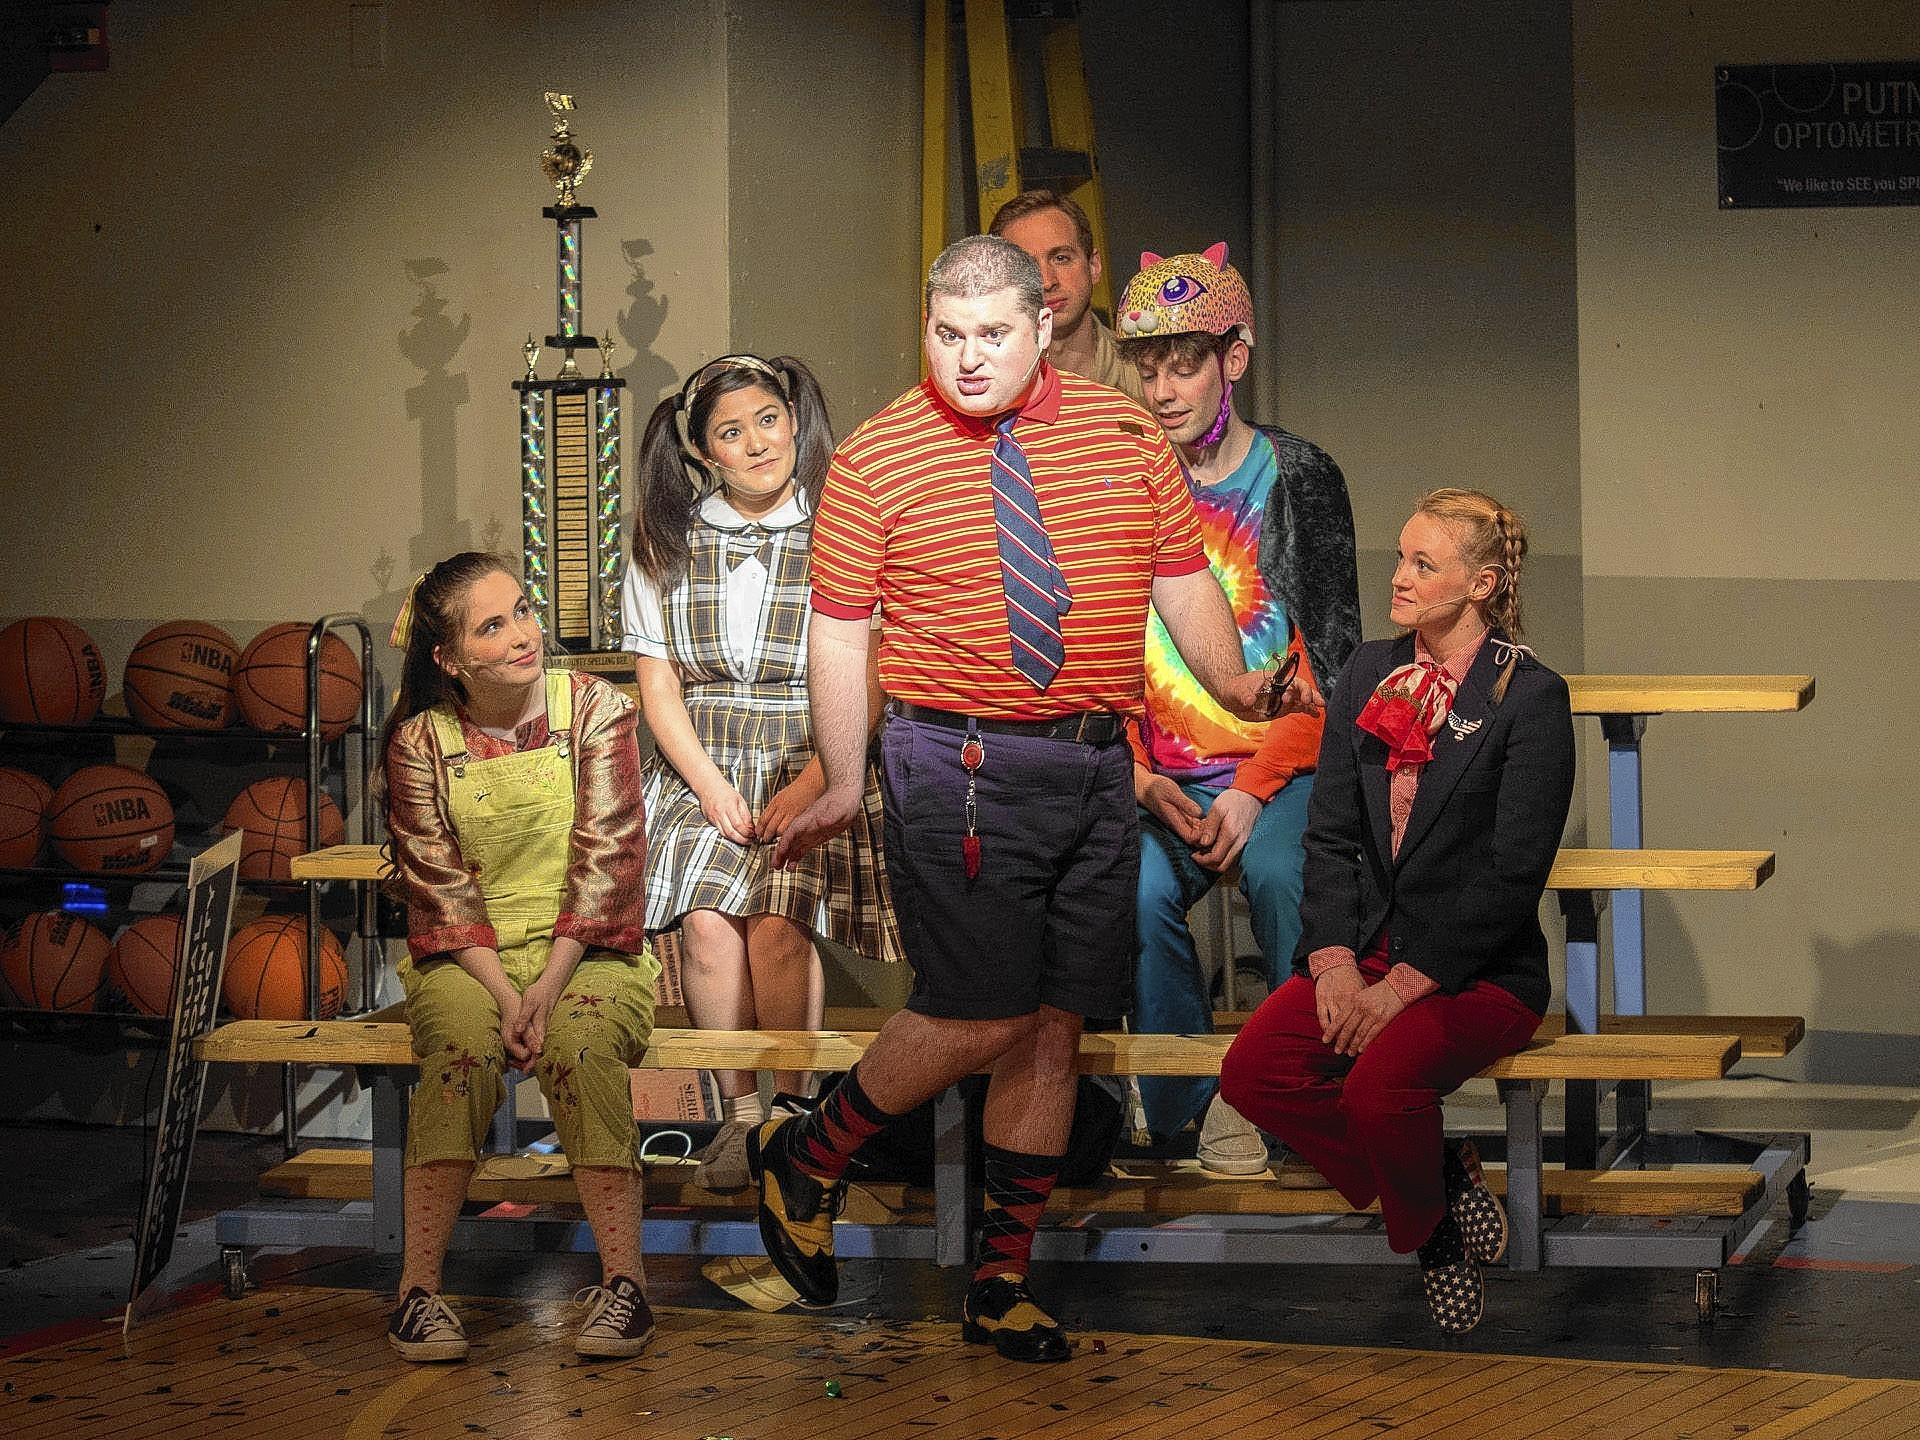 """The 25th Annual Putnam County Spelling Bee"" features Steven Mooney as Barfee in center, surrounded (left to right) by Natalie Sannes (Olive), Maya Naff (Marcy), Scott Scaffidi (Chip), Kevin Barlowski (Leaf), and Hillary Ekwall (Schwarzy)."